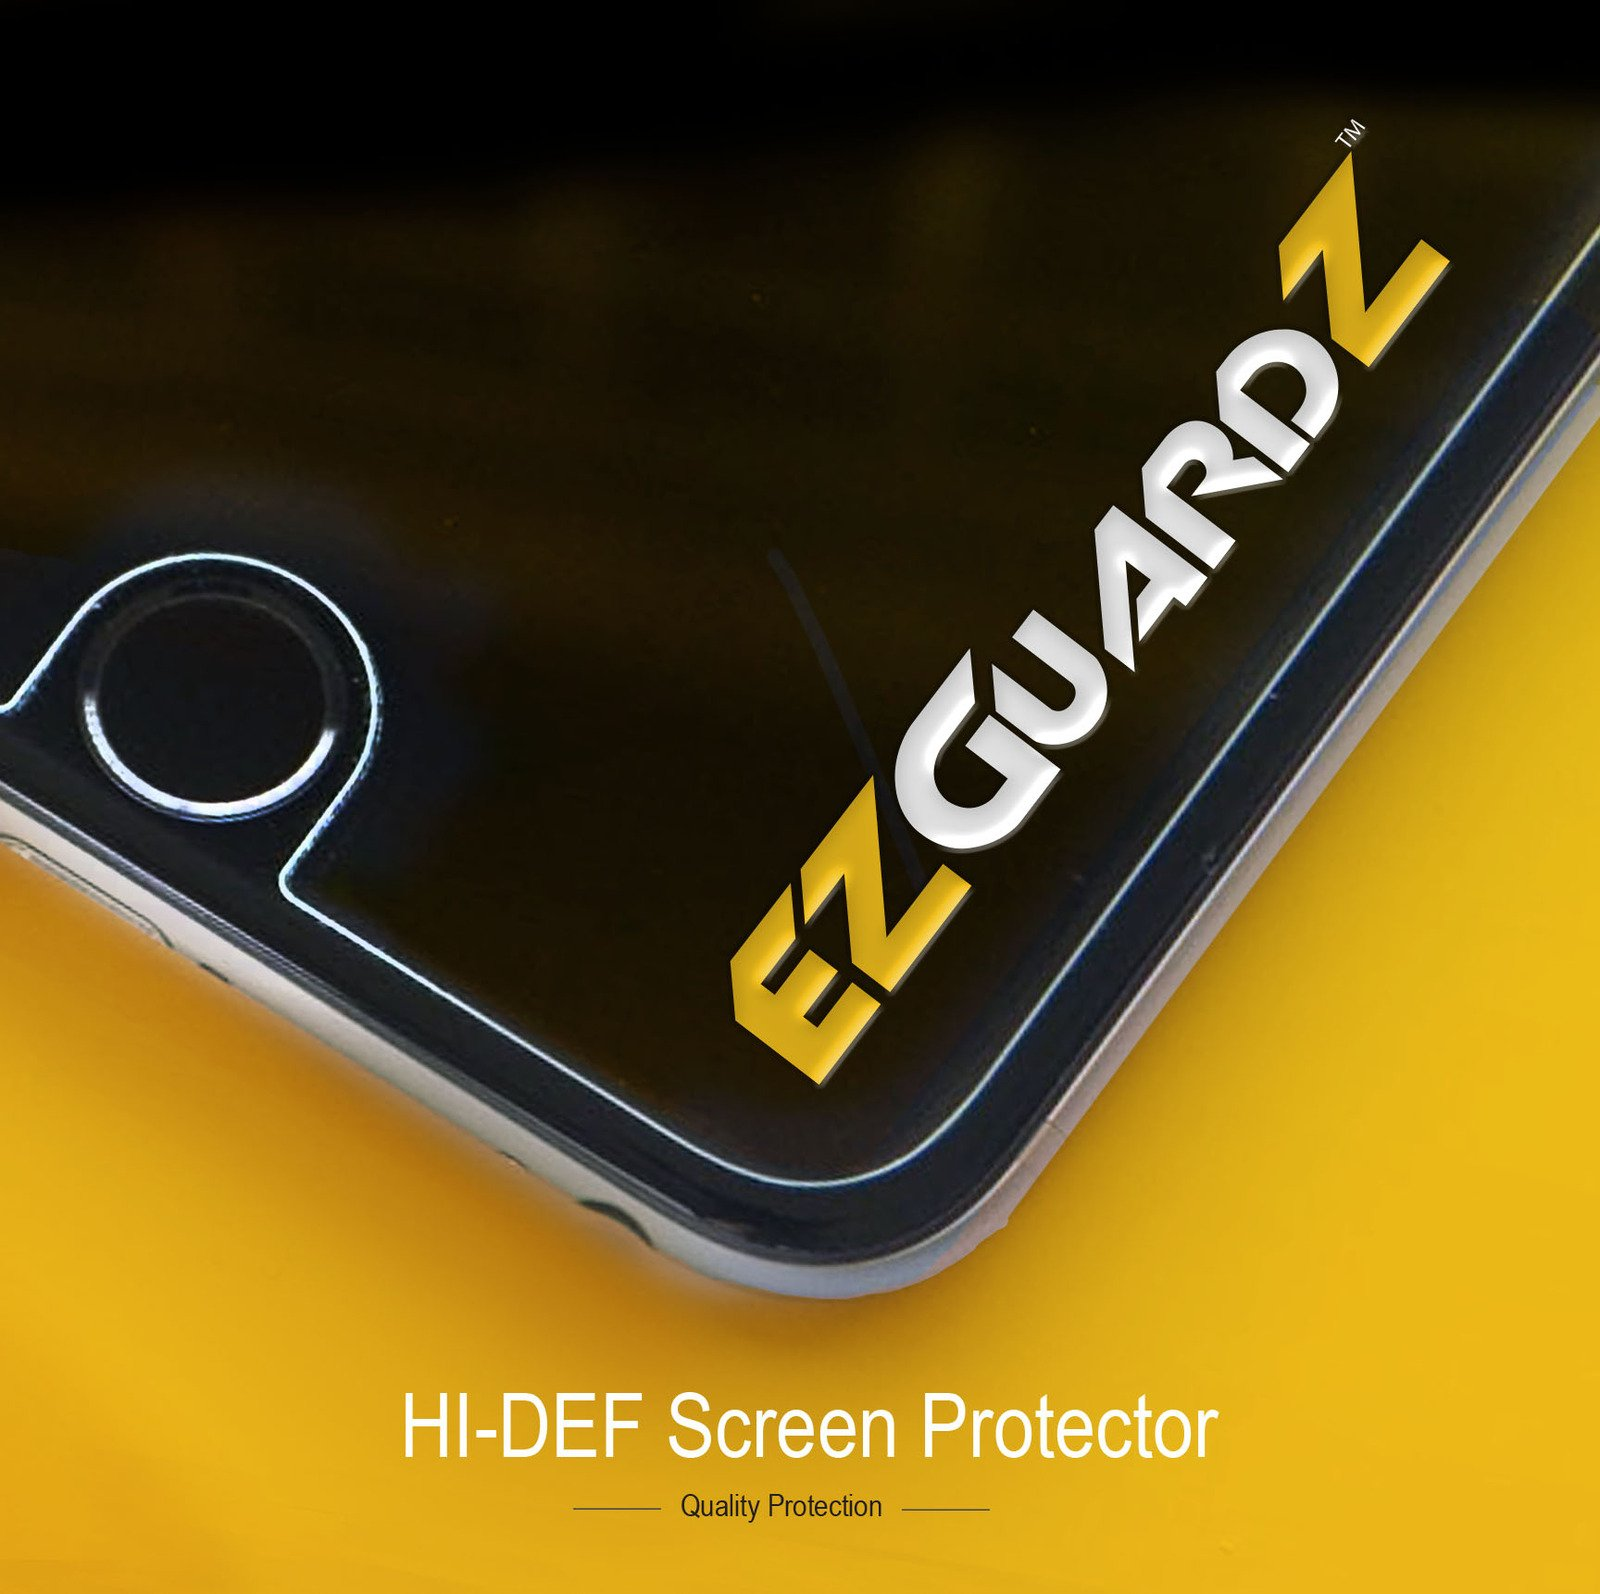 (2-Pack) EZGuardZ Screen Protector for Garmin Nuvi 57LM (Ultra Clear) by EZGuardZ (Image #2)